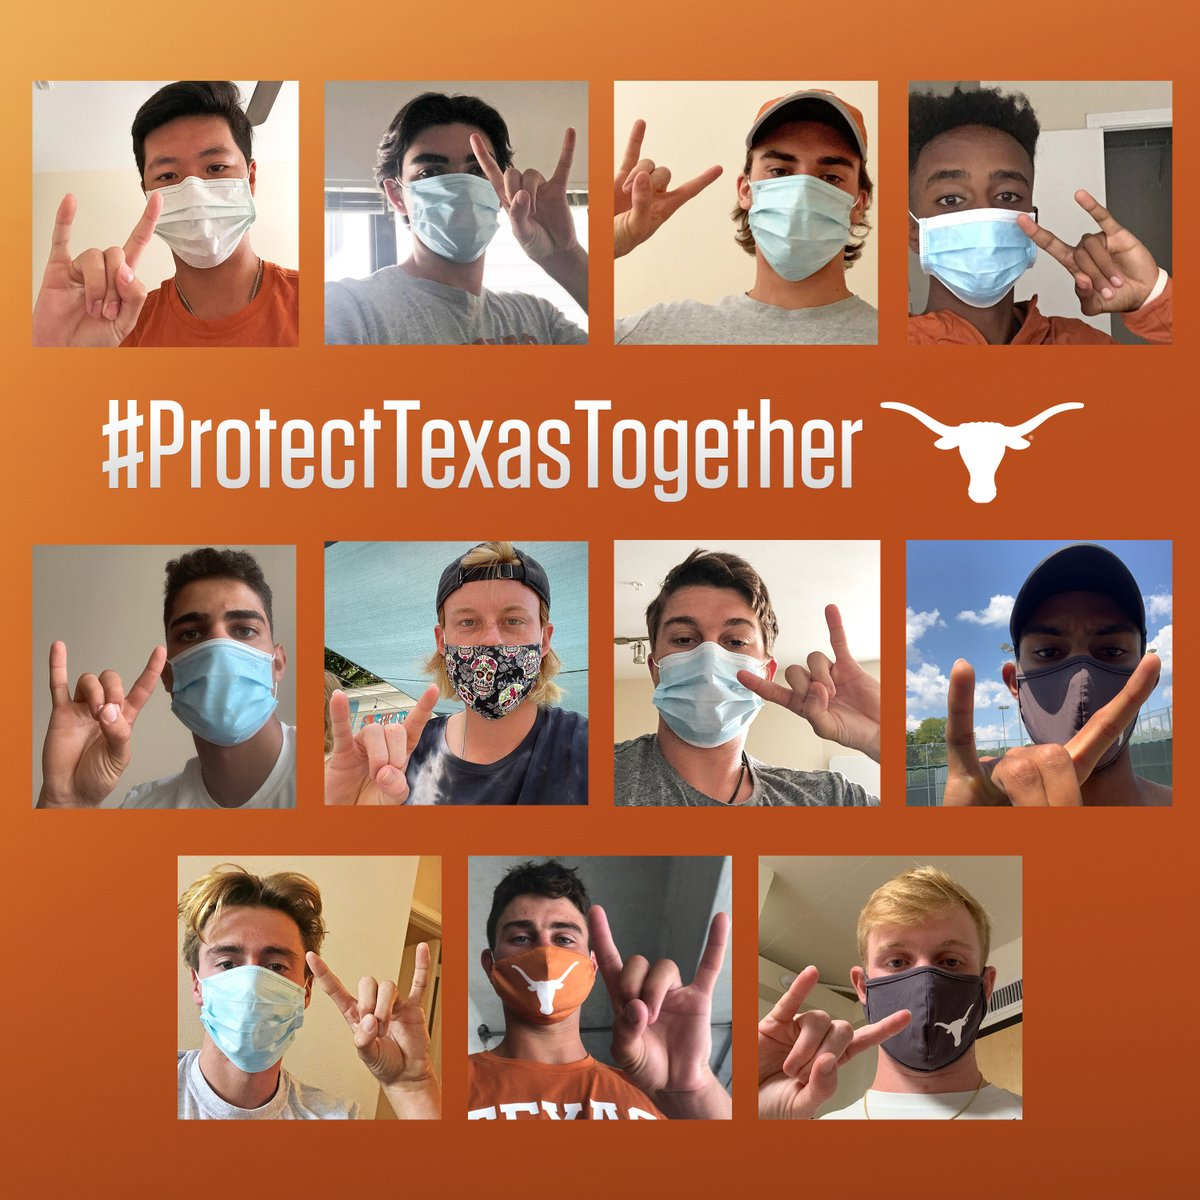 Longhorn Nation – we need you! Let's #ProtectTexasTogether 😷 🤘🎾